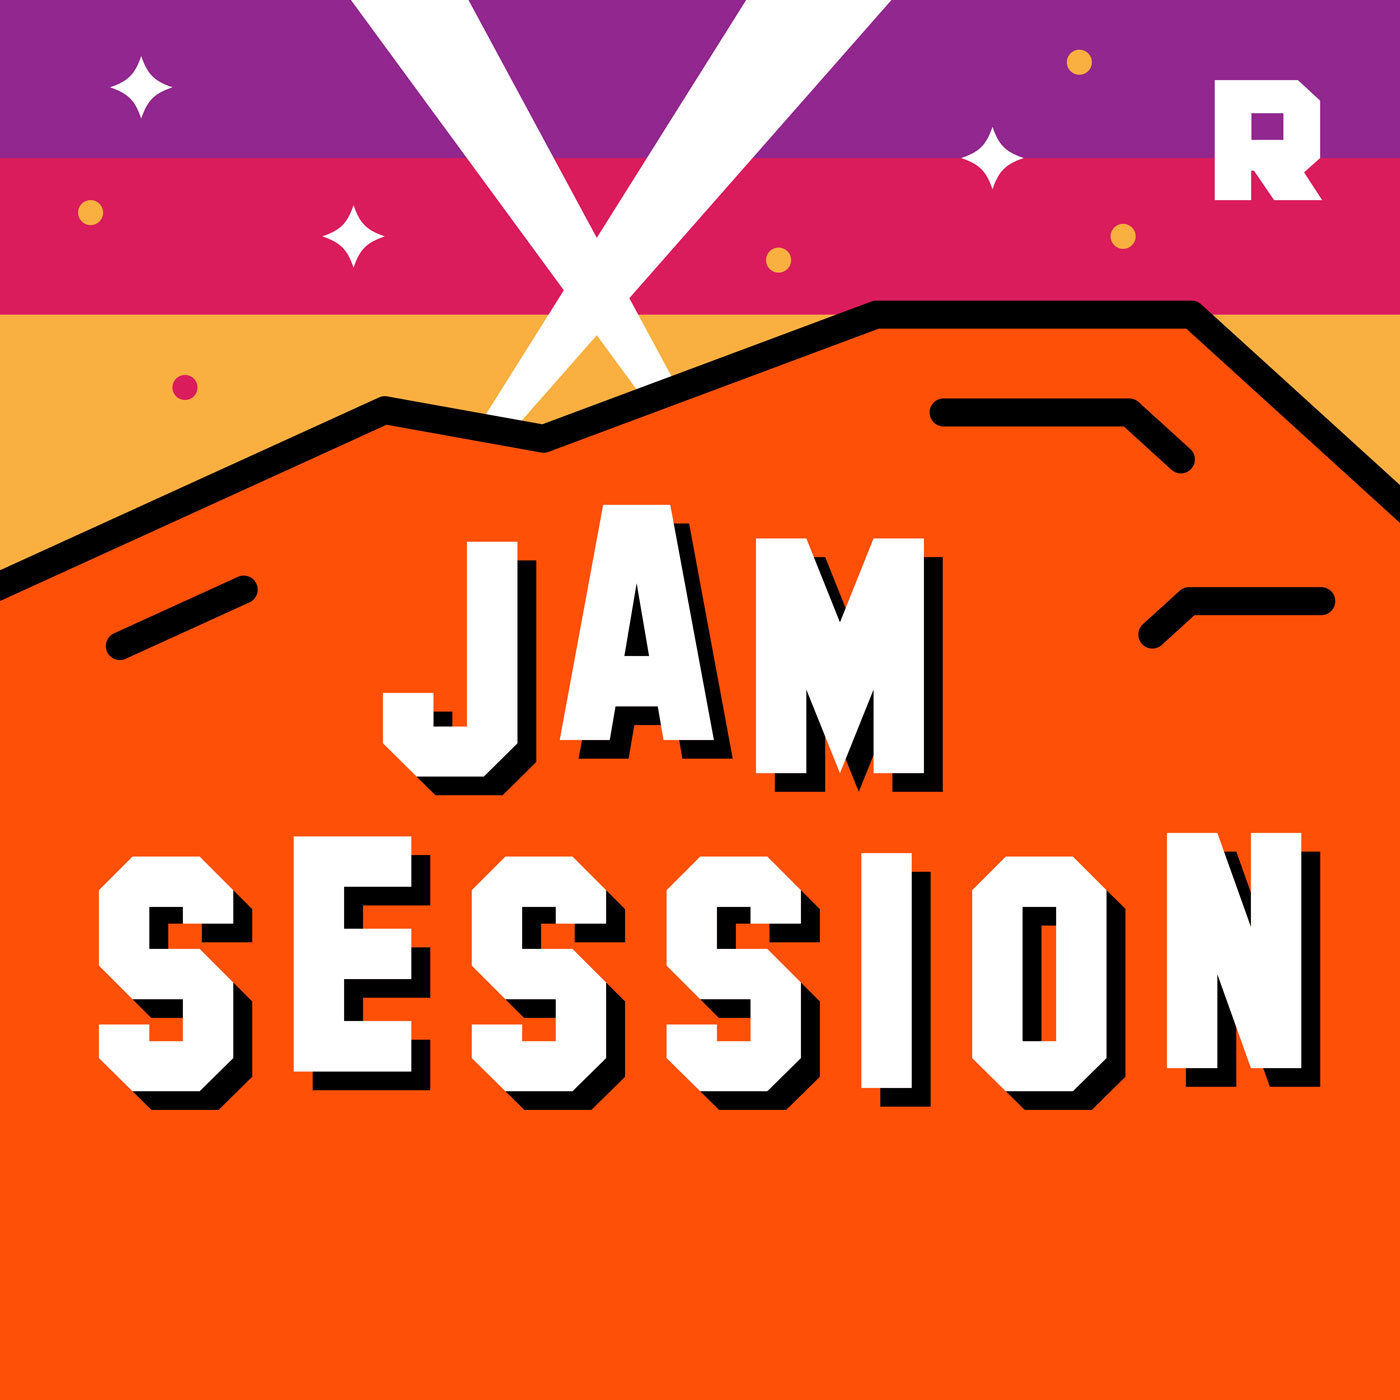 Celebrity Yacht Season Kickoff | Jam Session